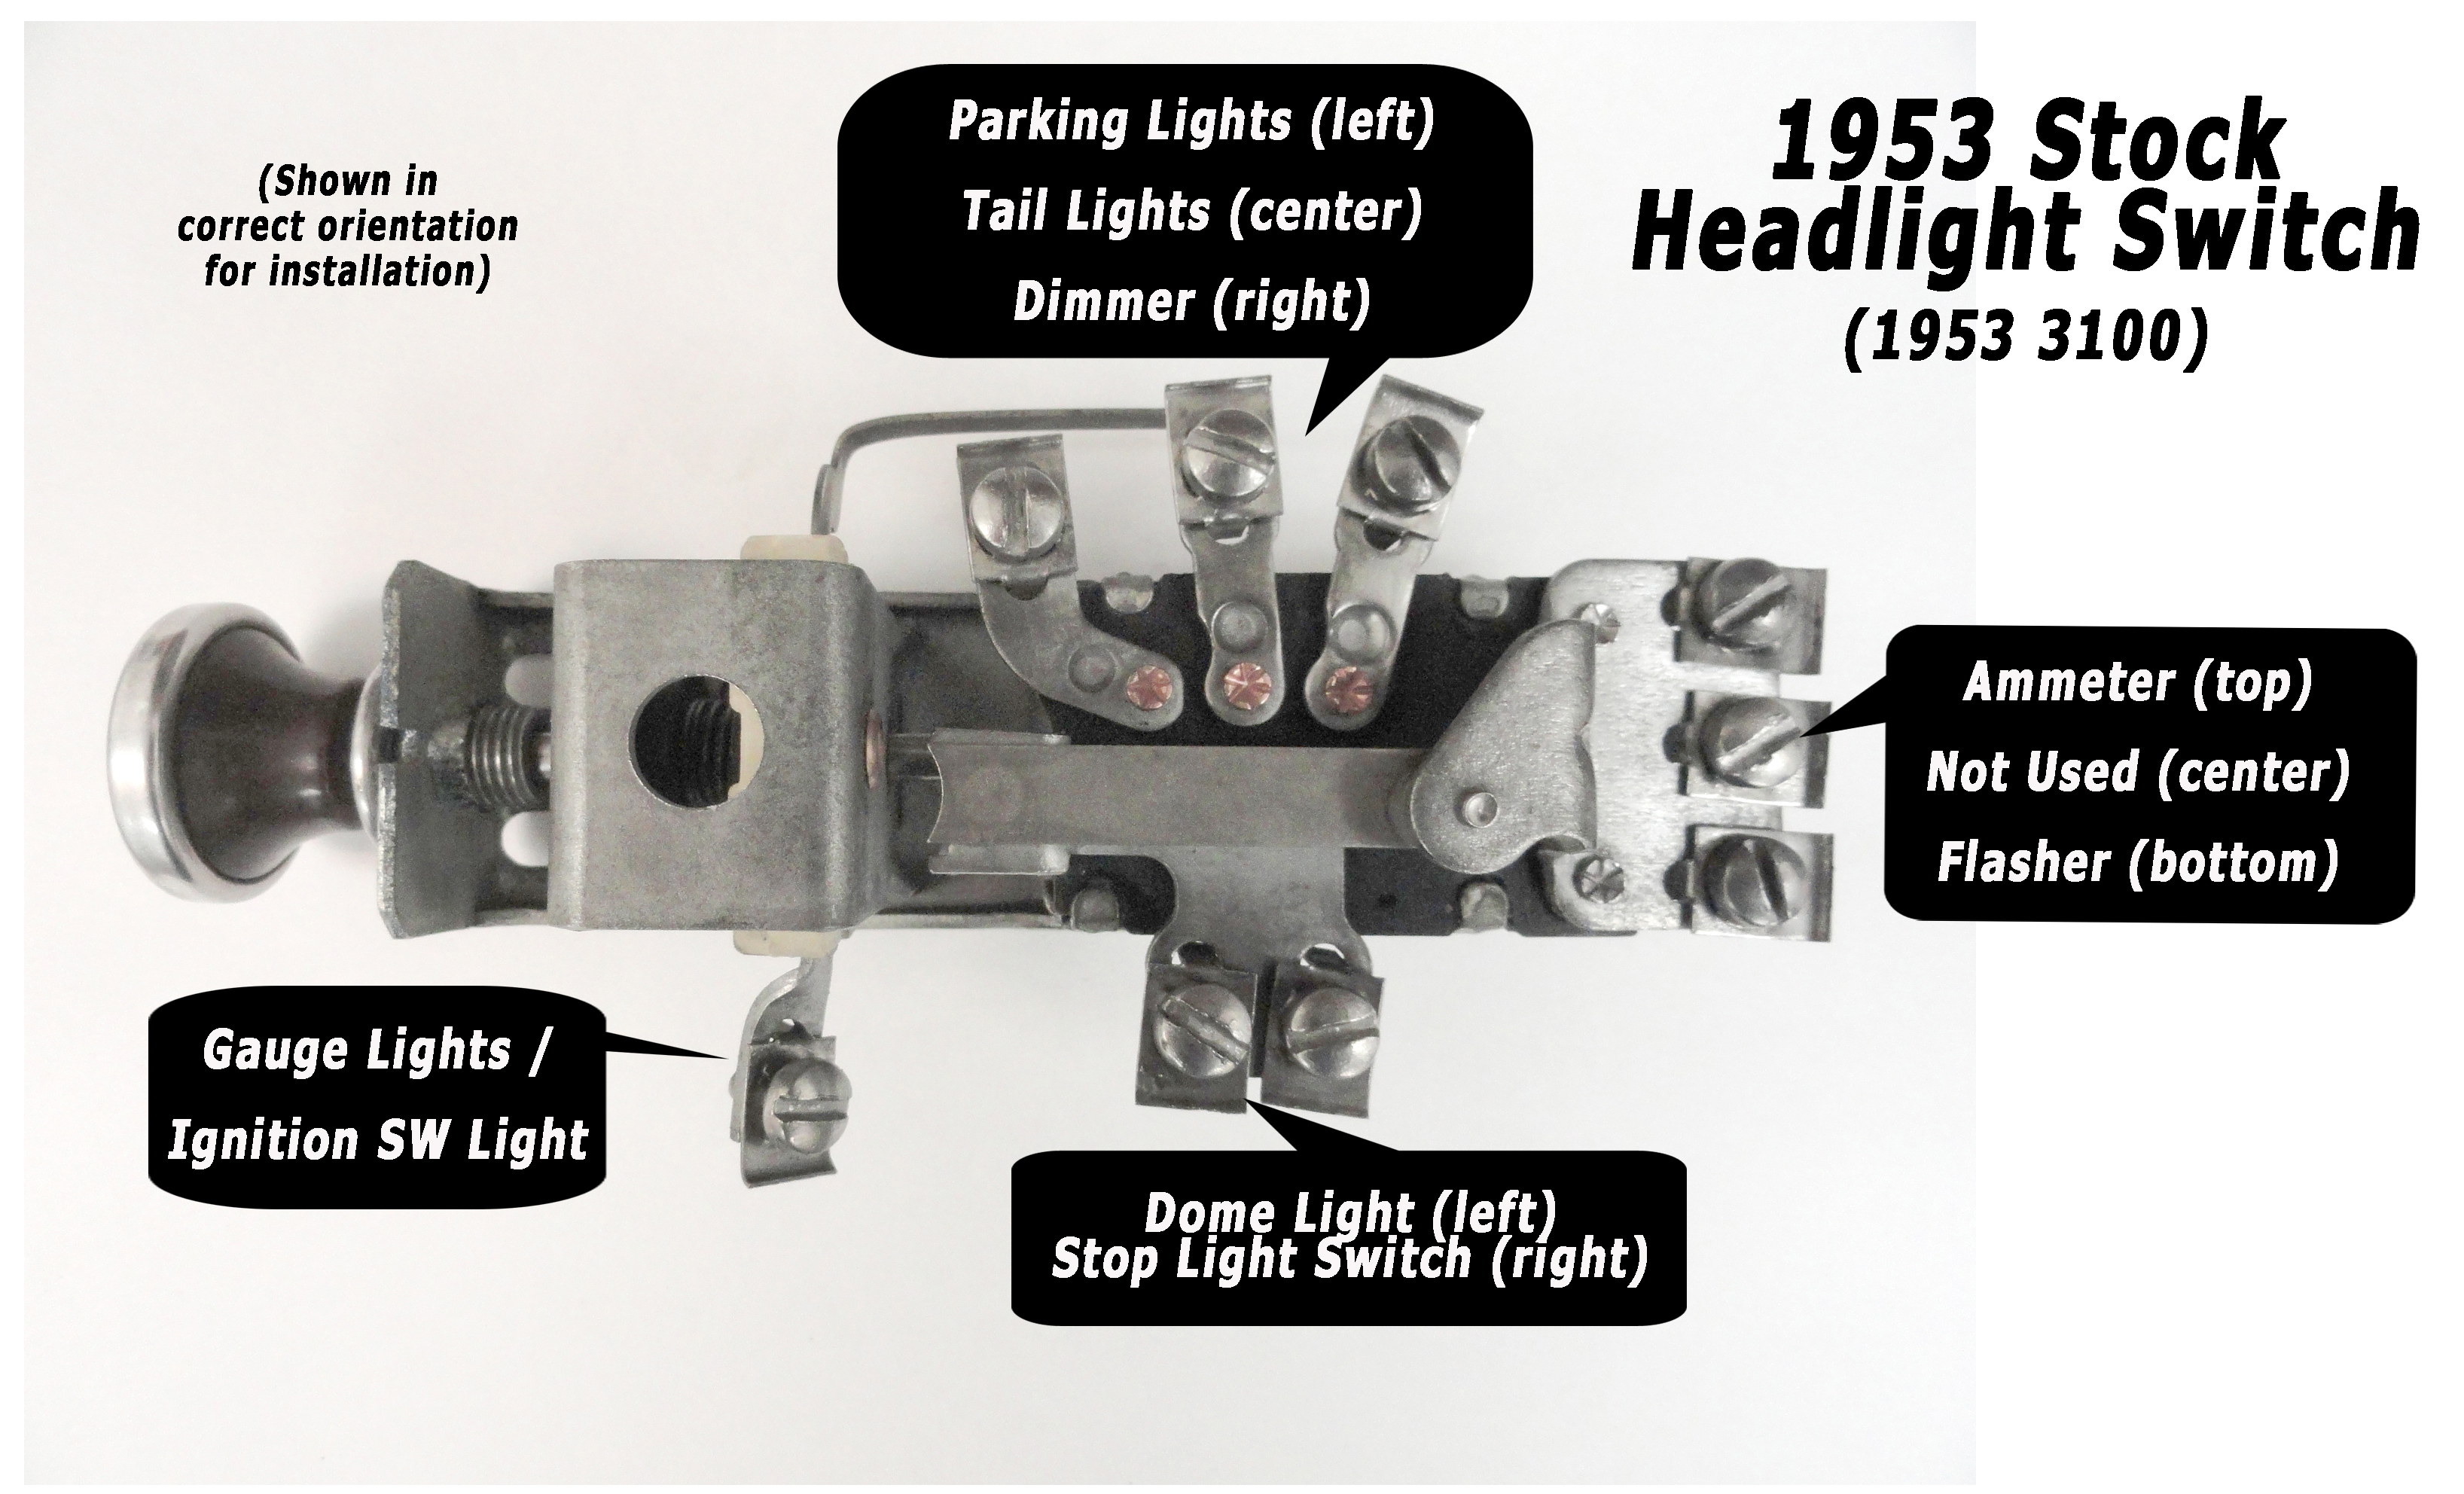 Headlight Switch Wiring Classic Parts Talk Chrysler Headlight Switch Wiring  Chevy Headlight Switch Wiring